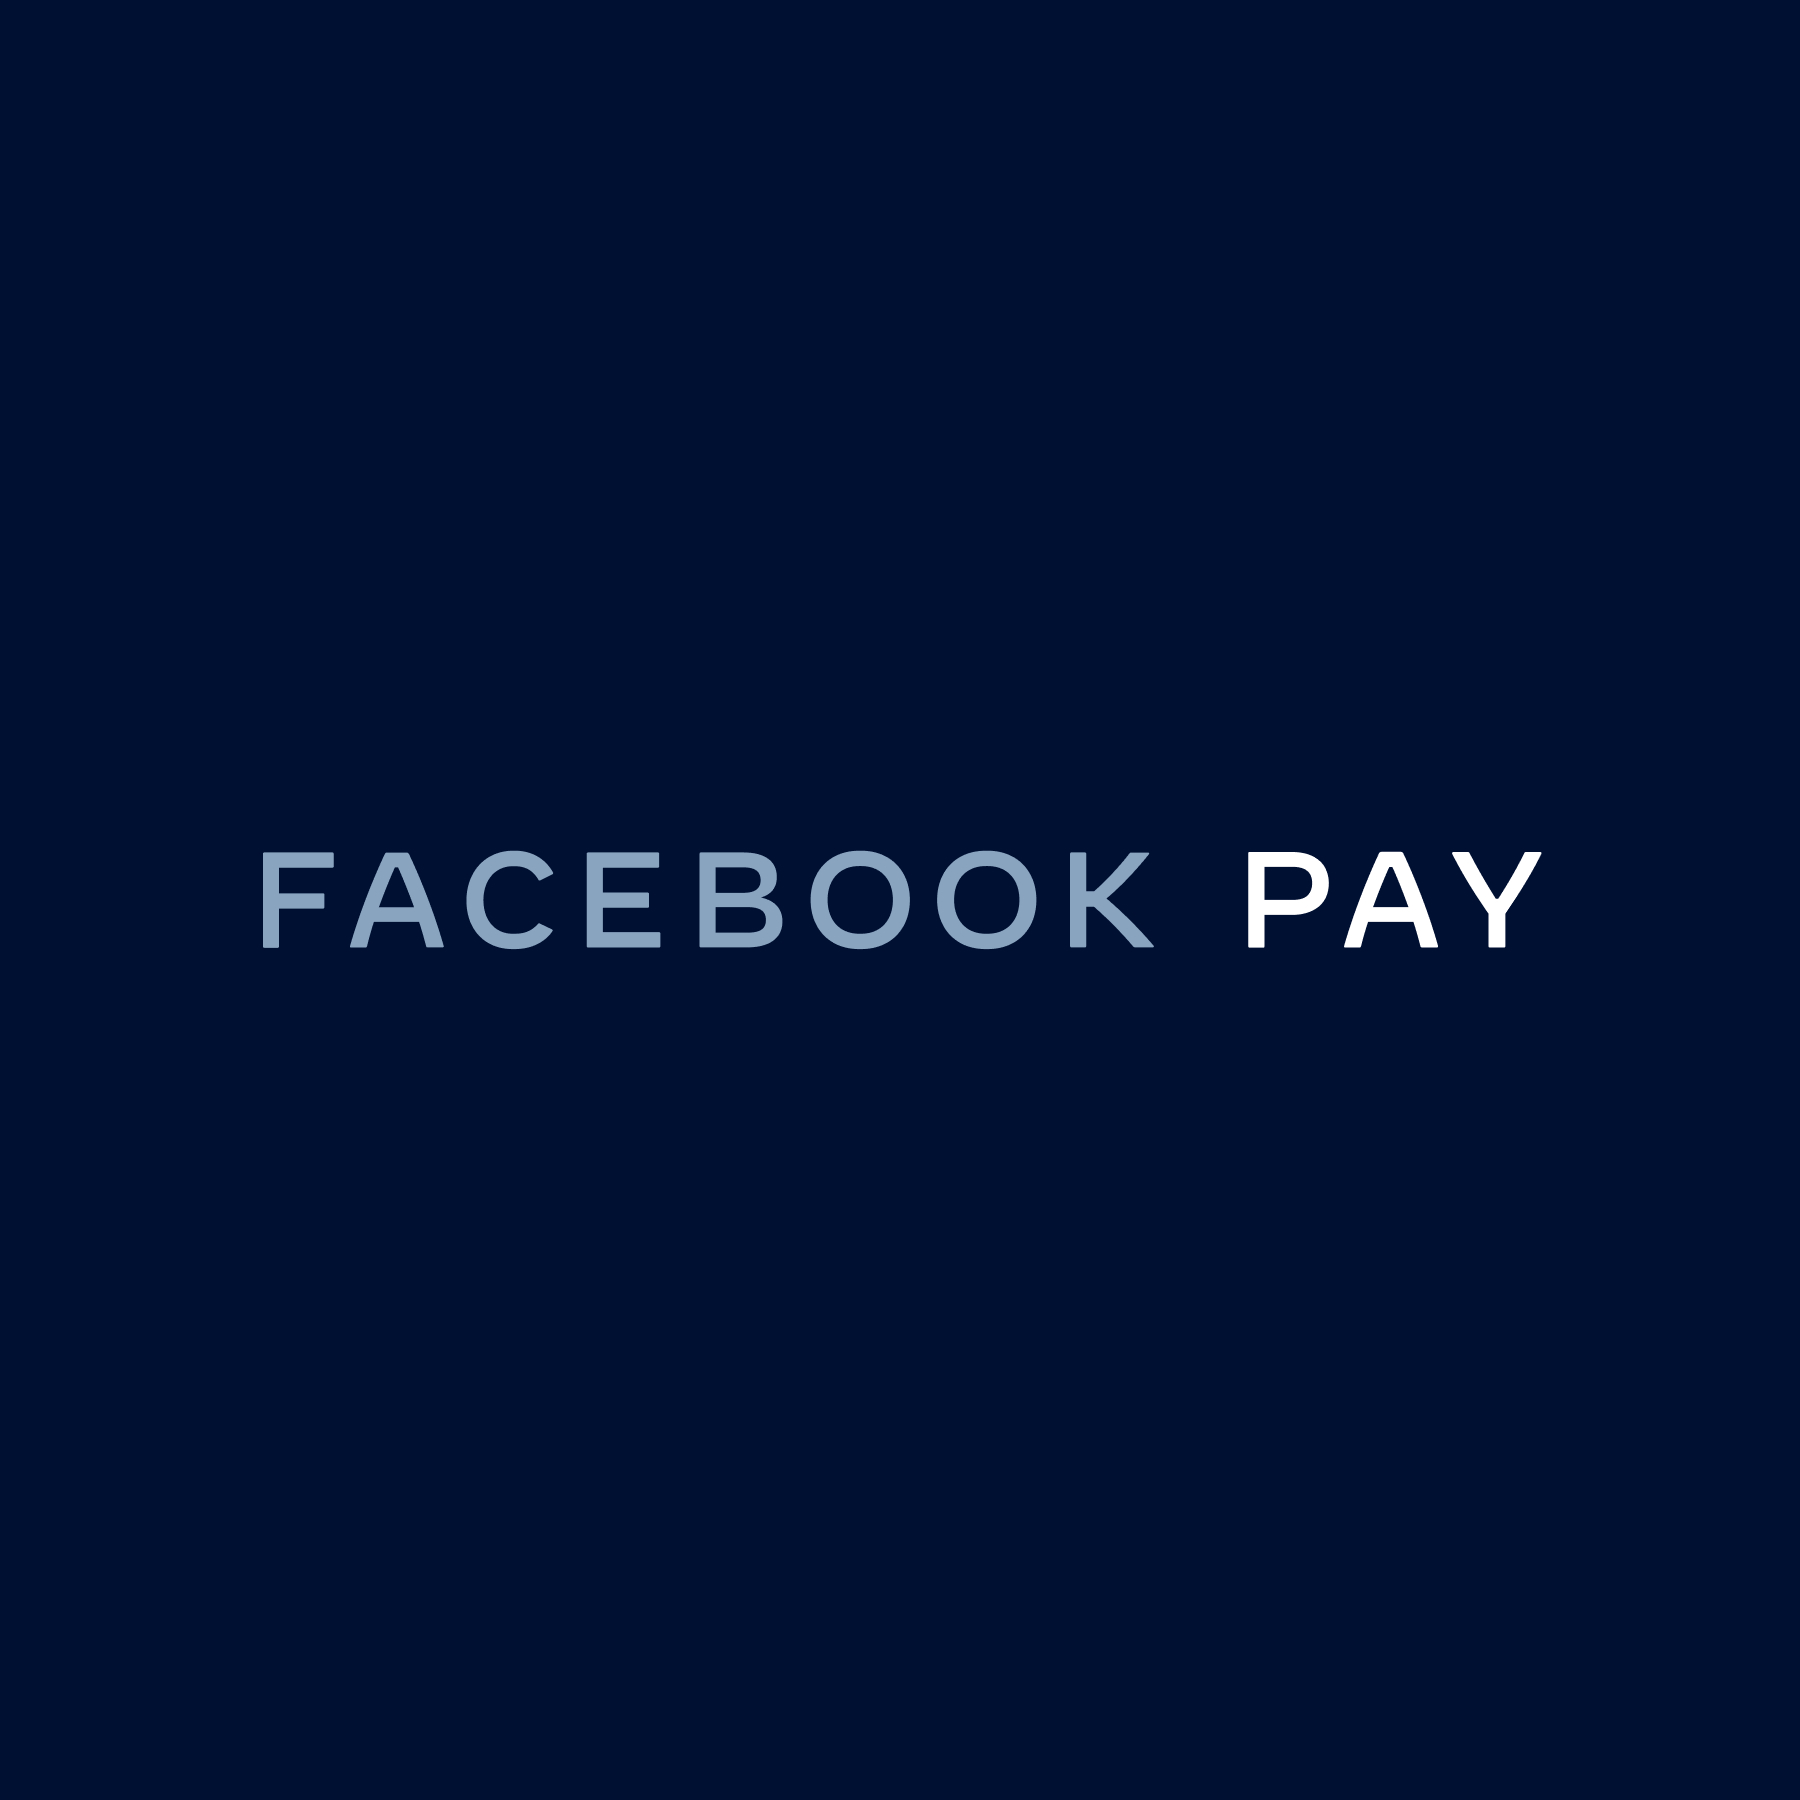 Facebook Pay: Simple, Secure, Free Payments